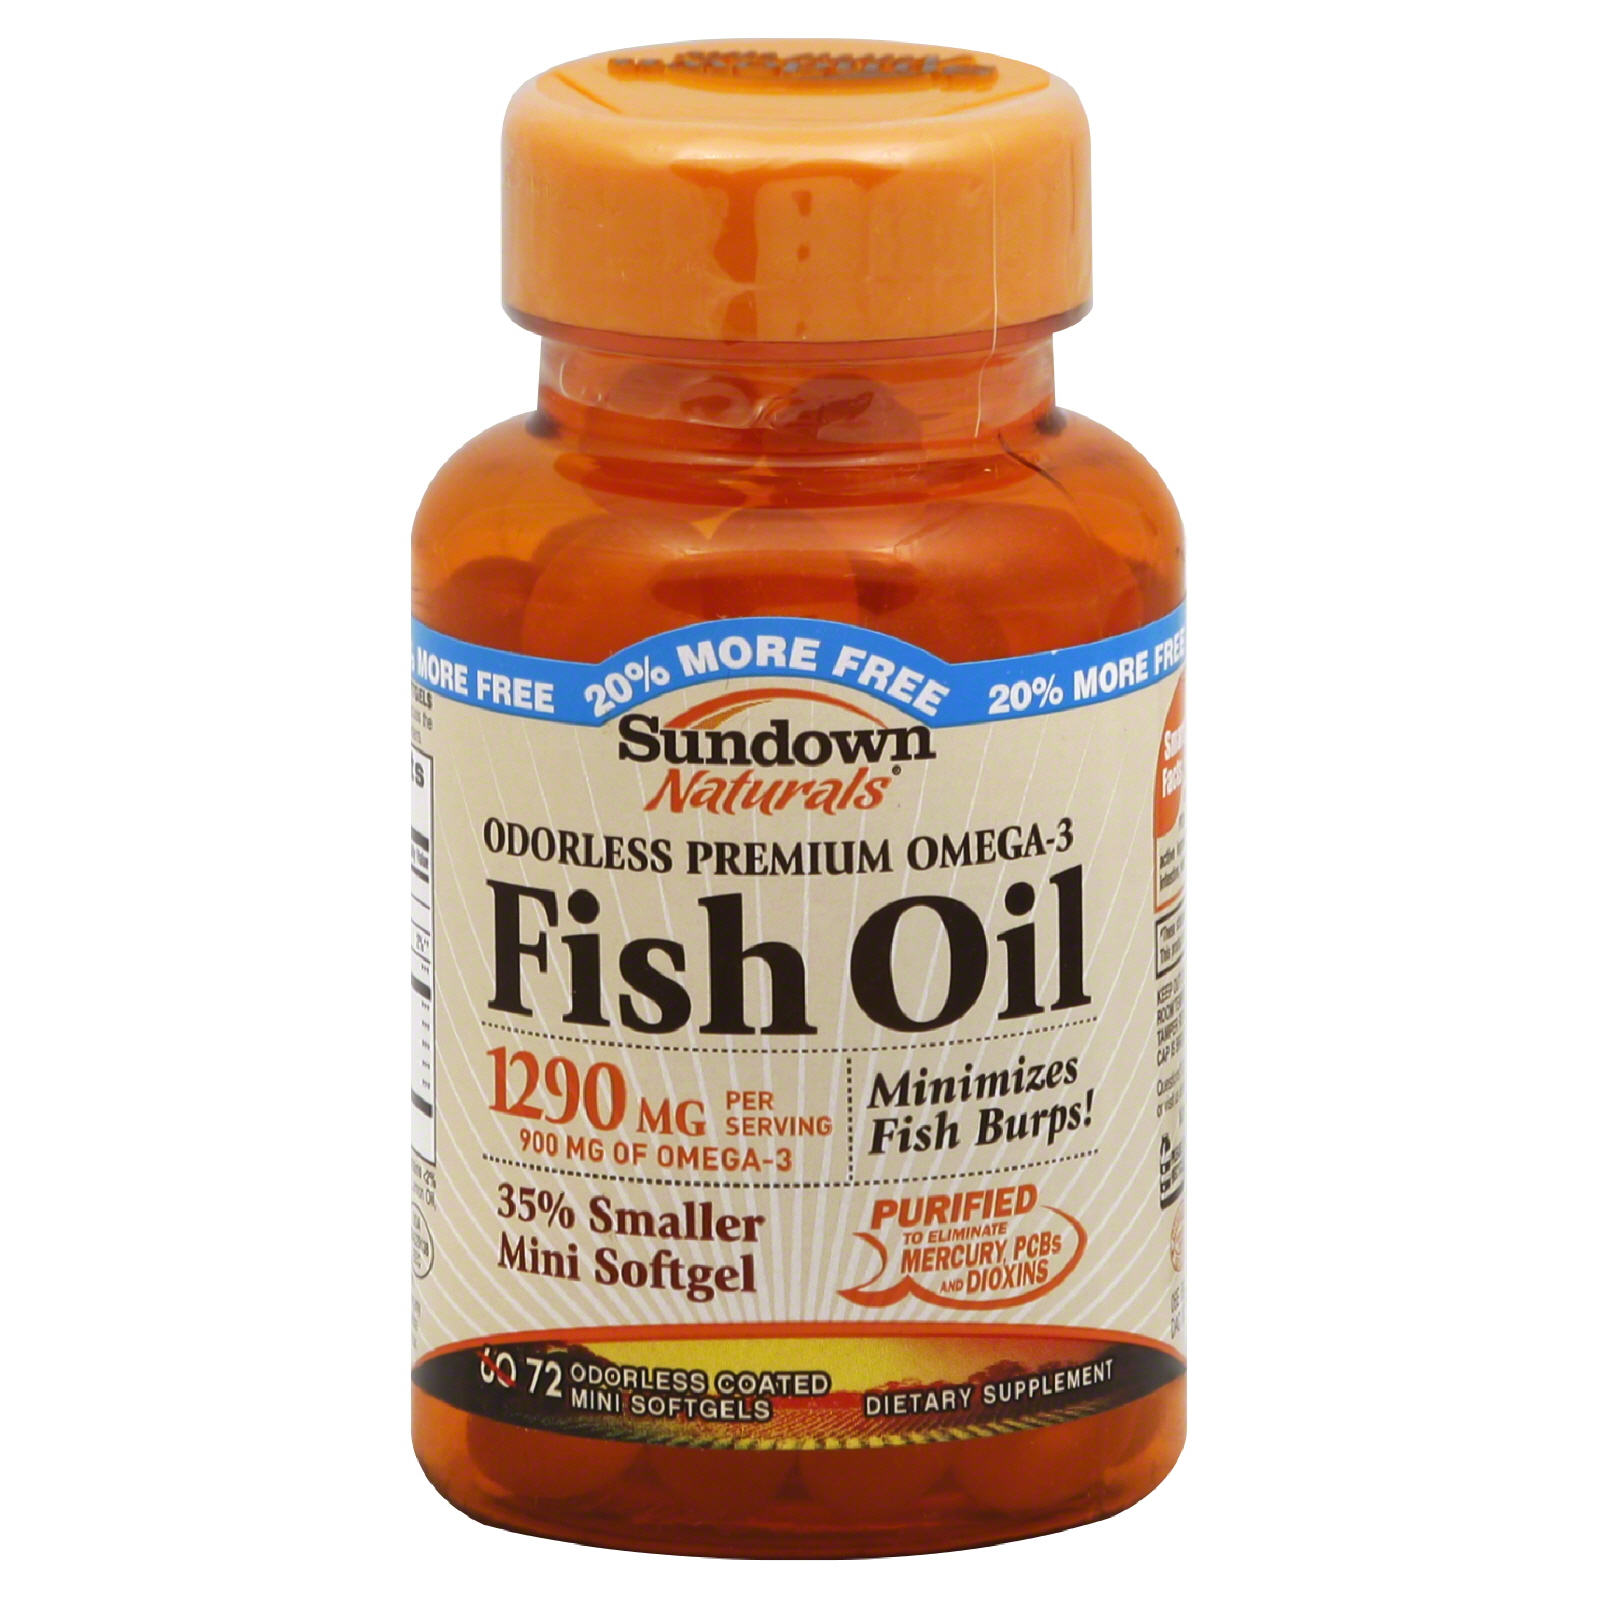 Sundown  Fish Oil, Odorless Premium